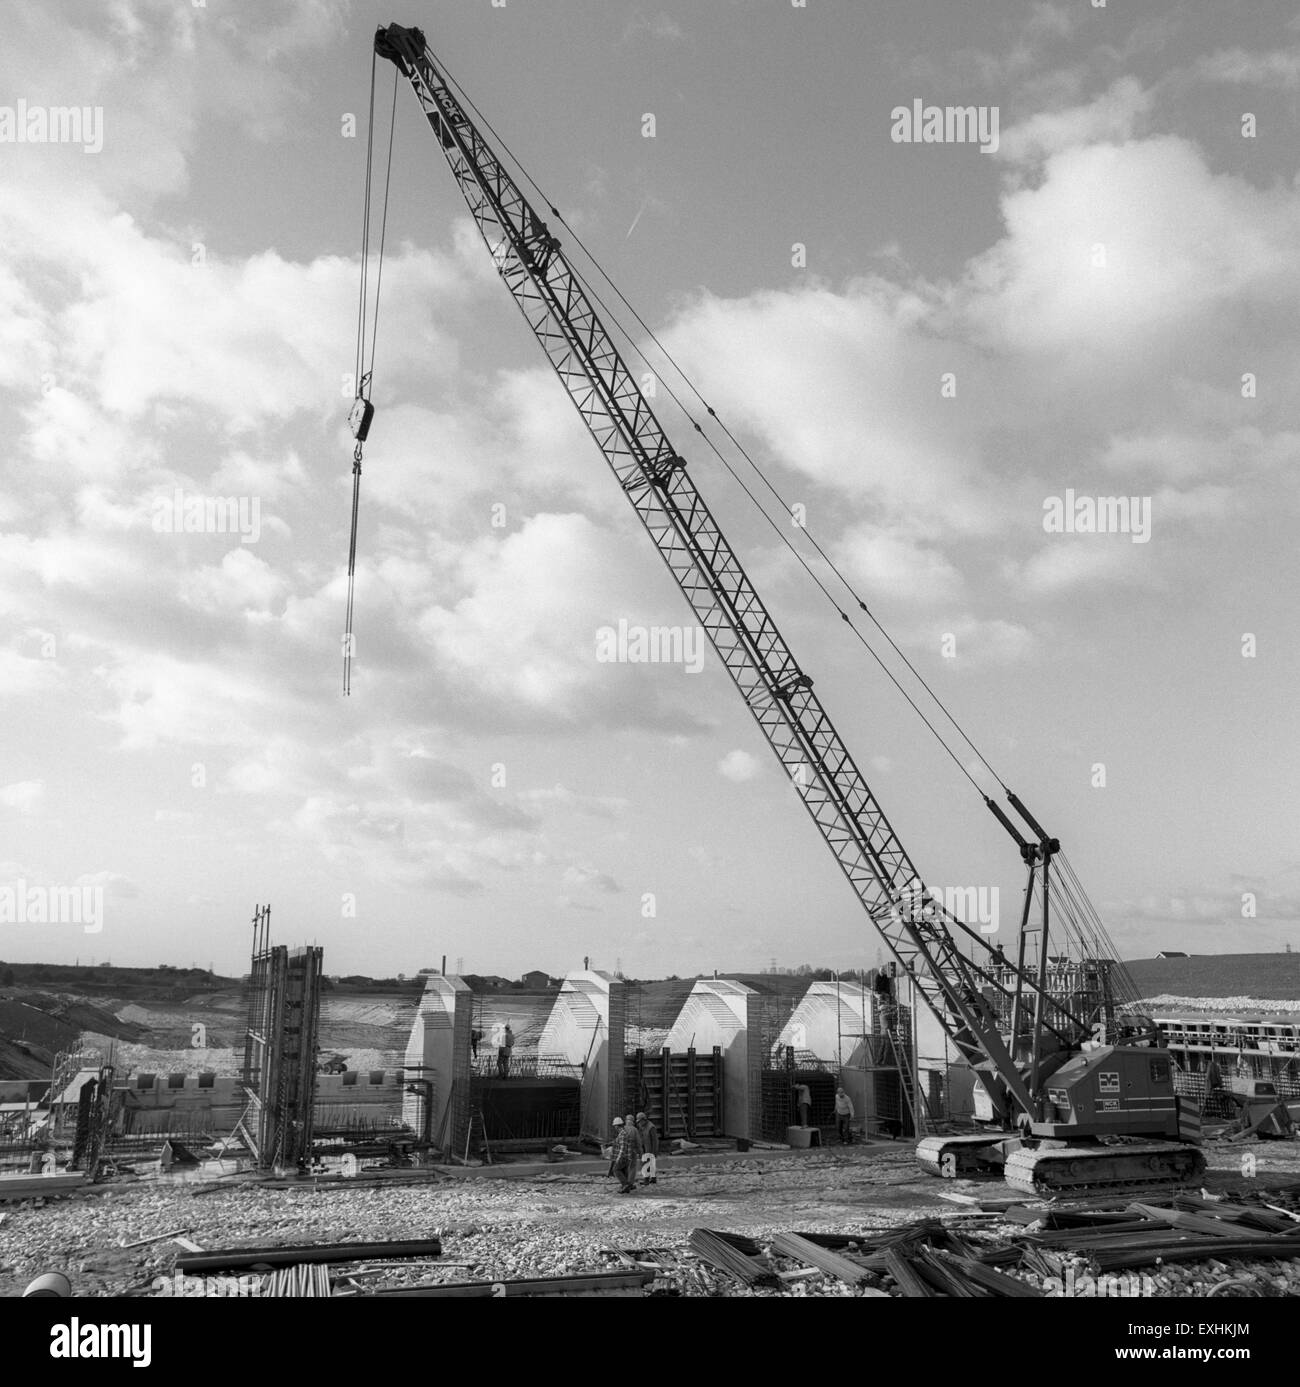 Civil Engineering, works by Manchester Ship Canal Company in early 1990s - Stock Image